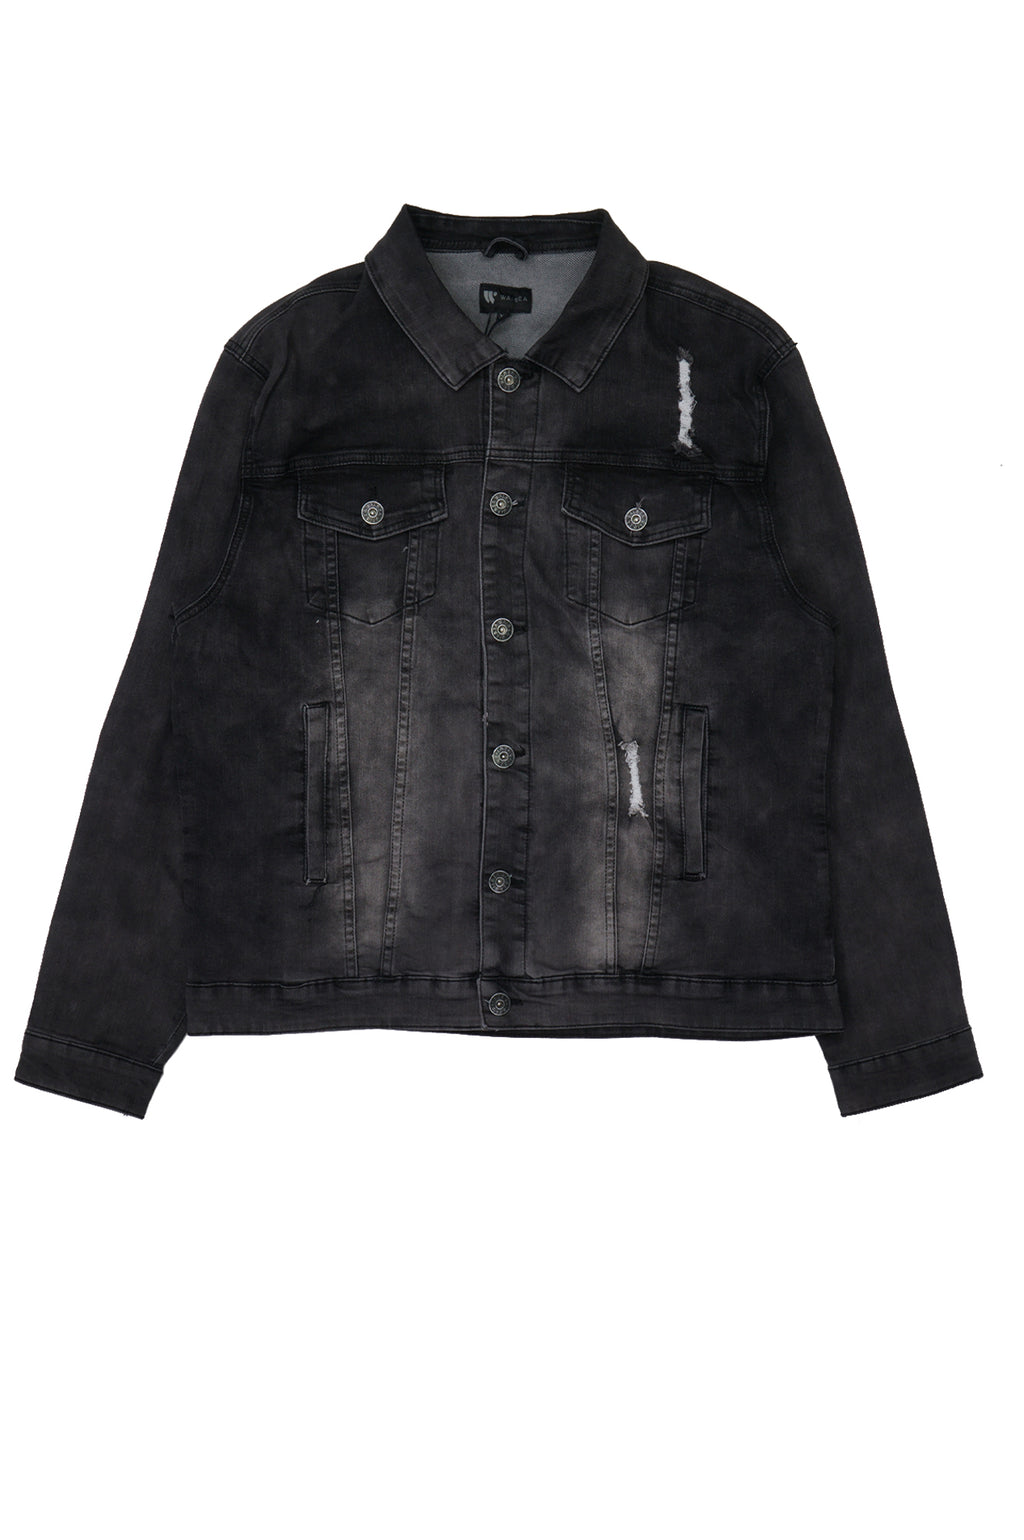 AAO FASHION MENS DENIM JACKET